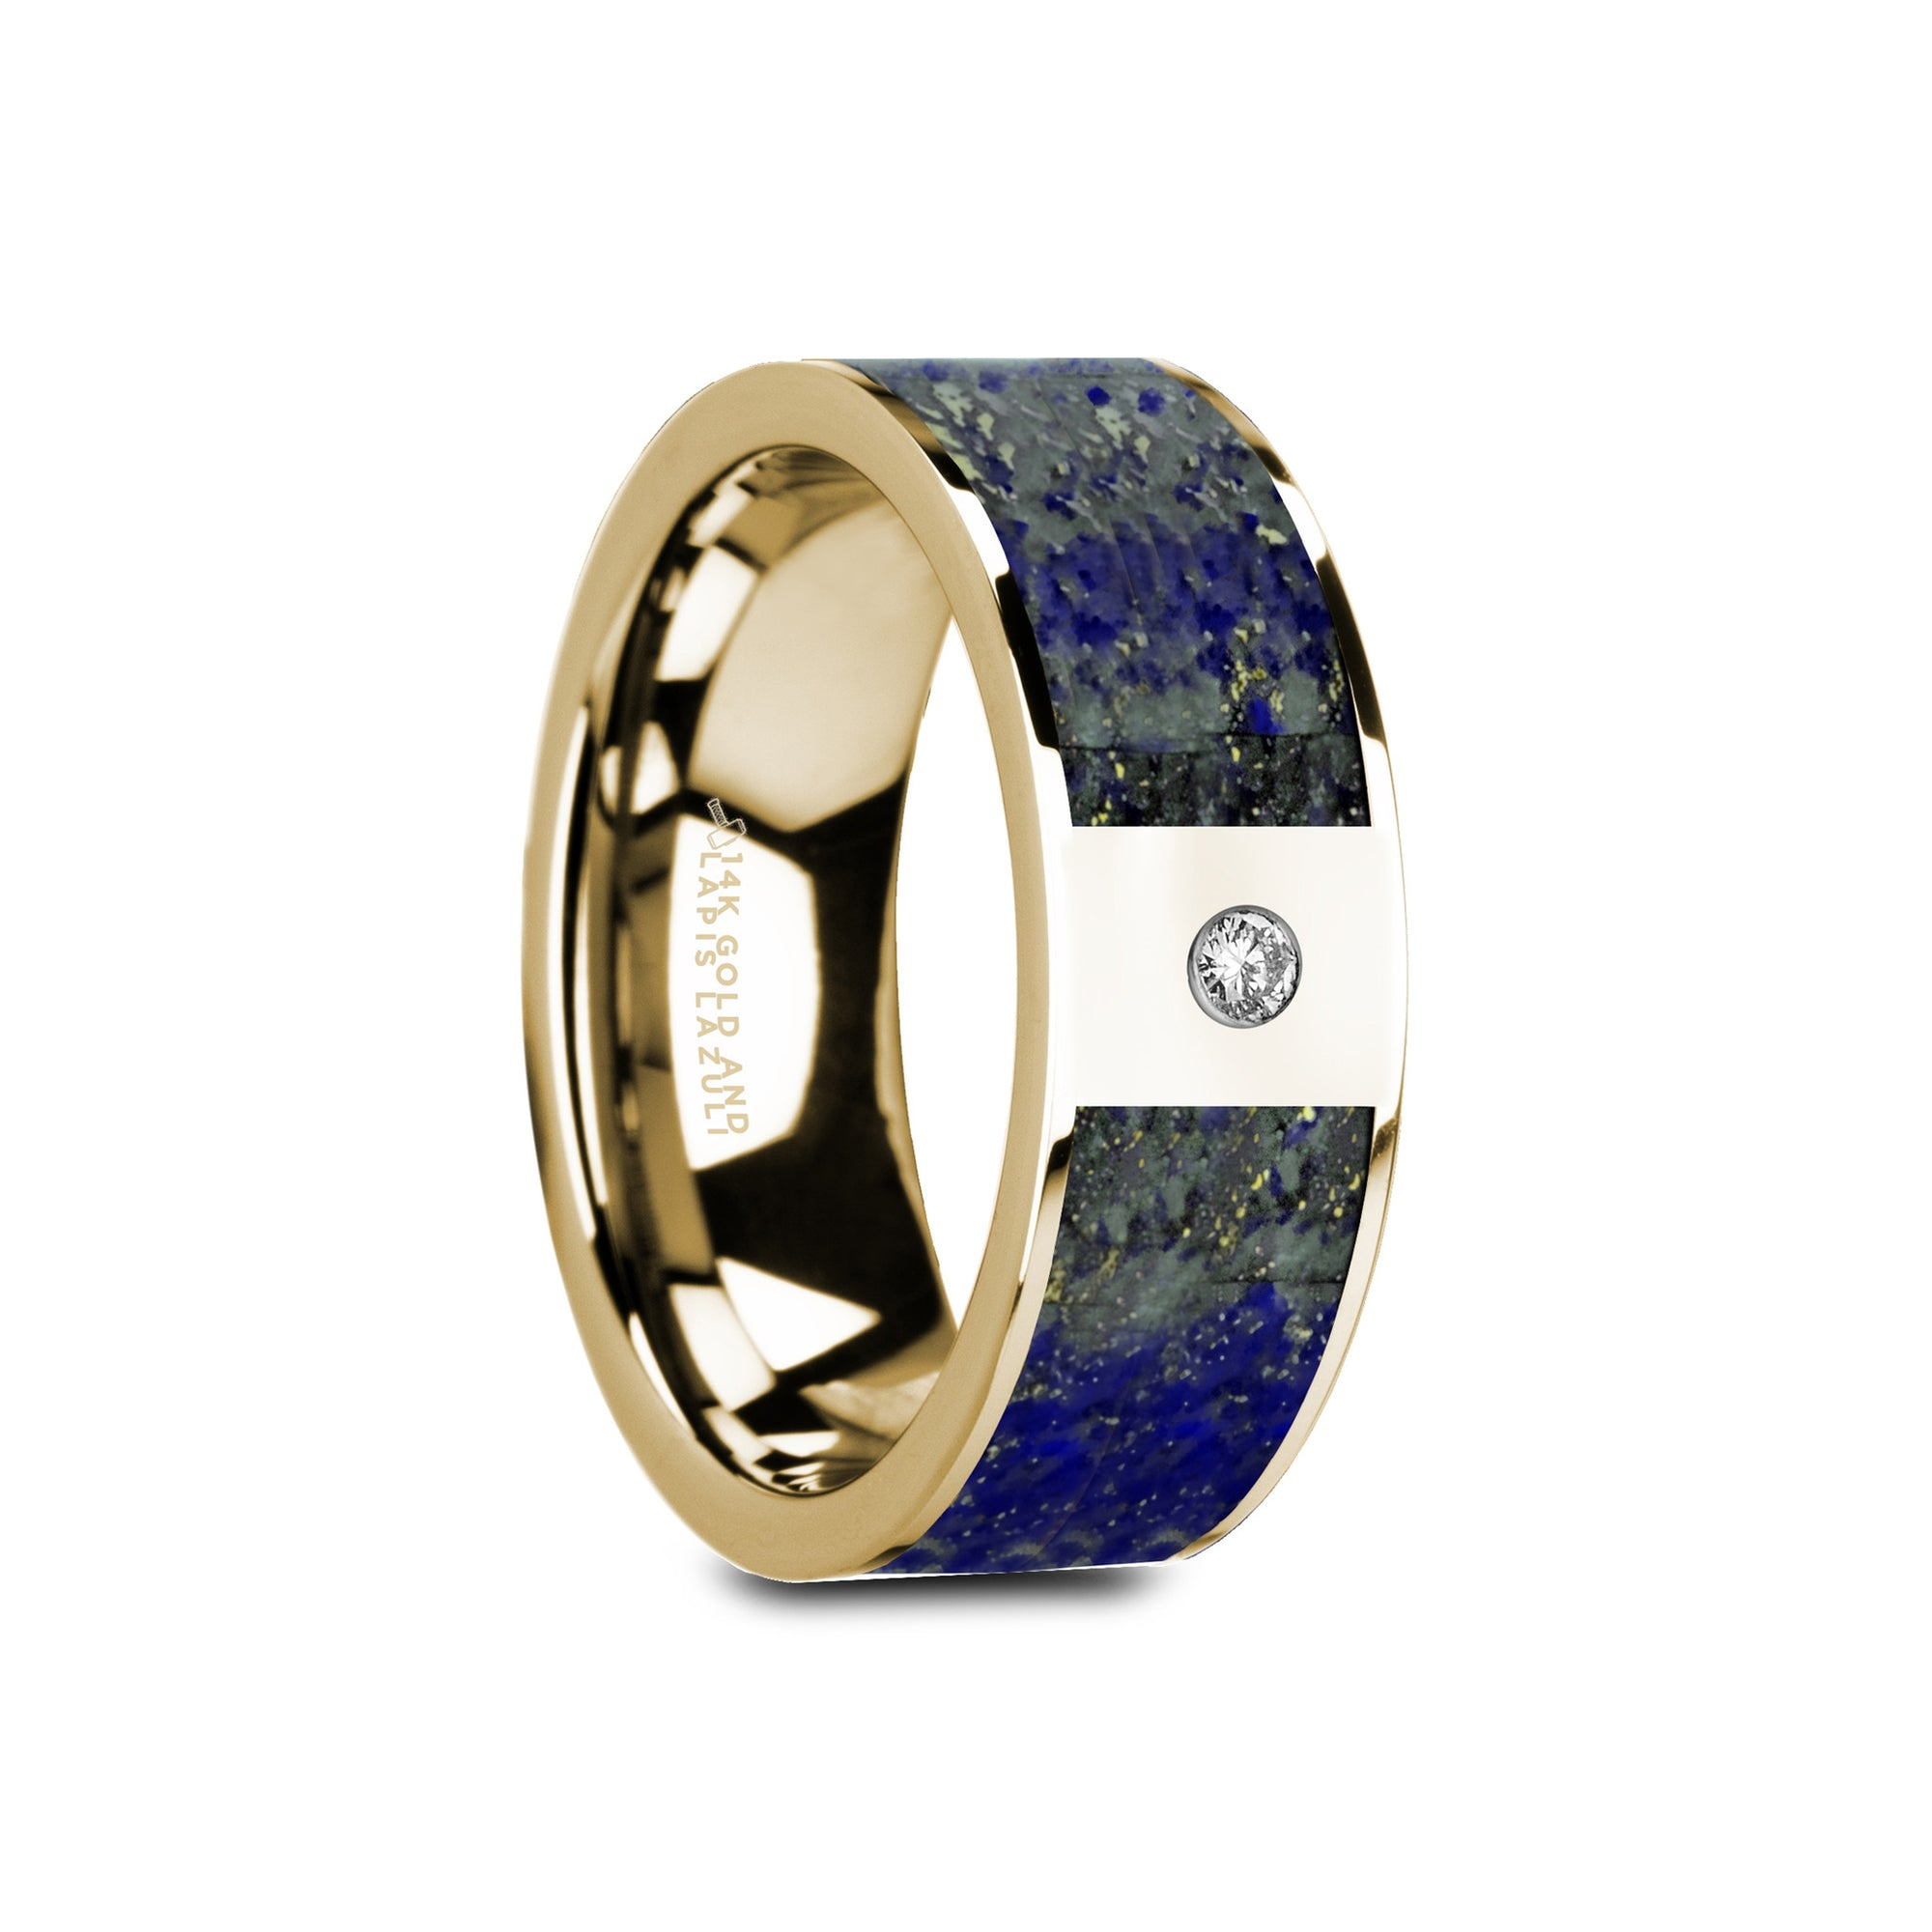 Lapis Wedding Ring | 14k Yellow Gold | Blue Lapis Lazuli Inlay | Diamond